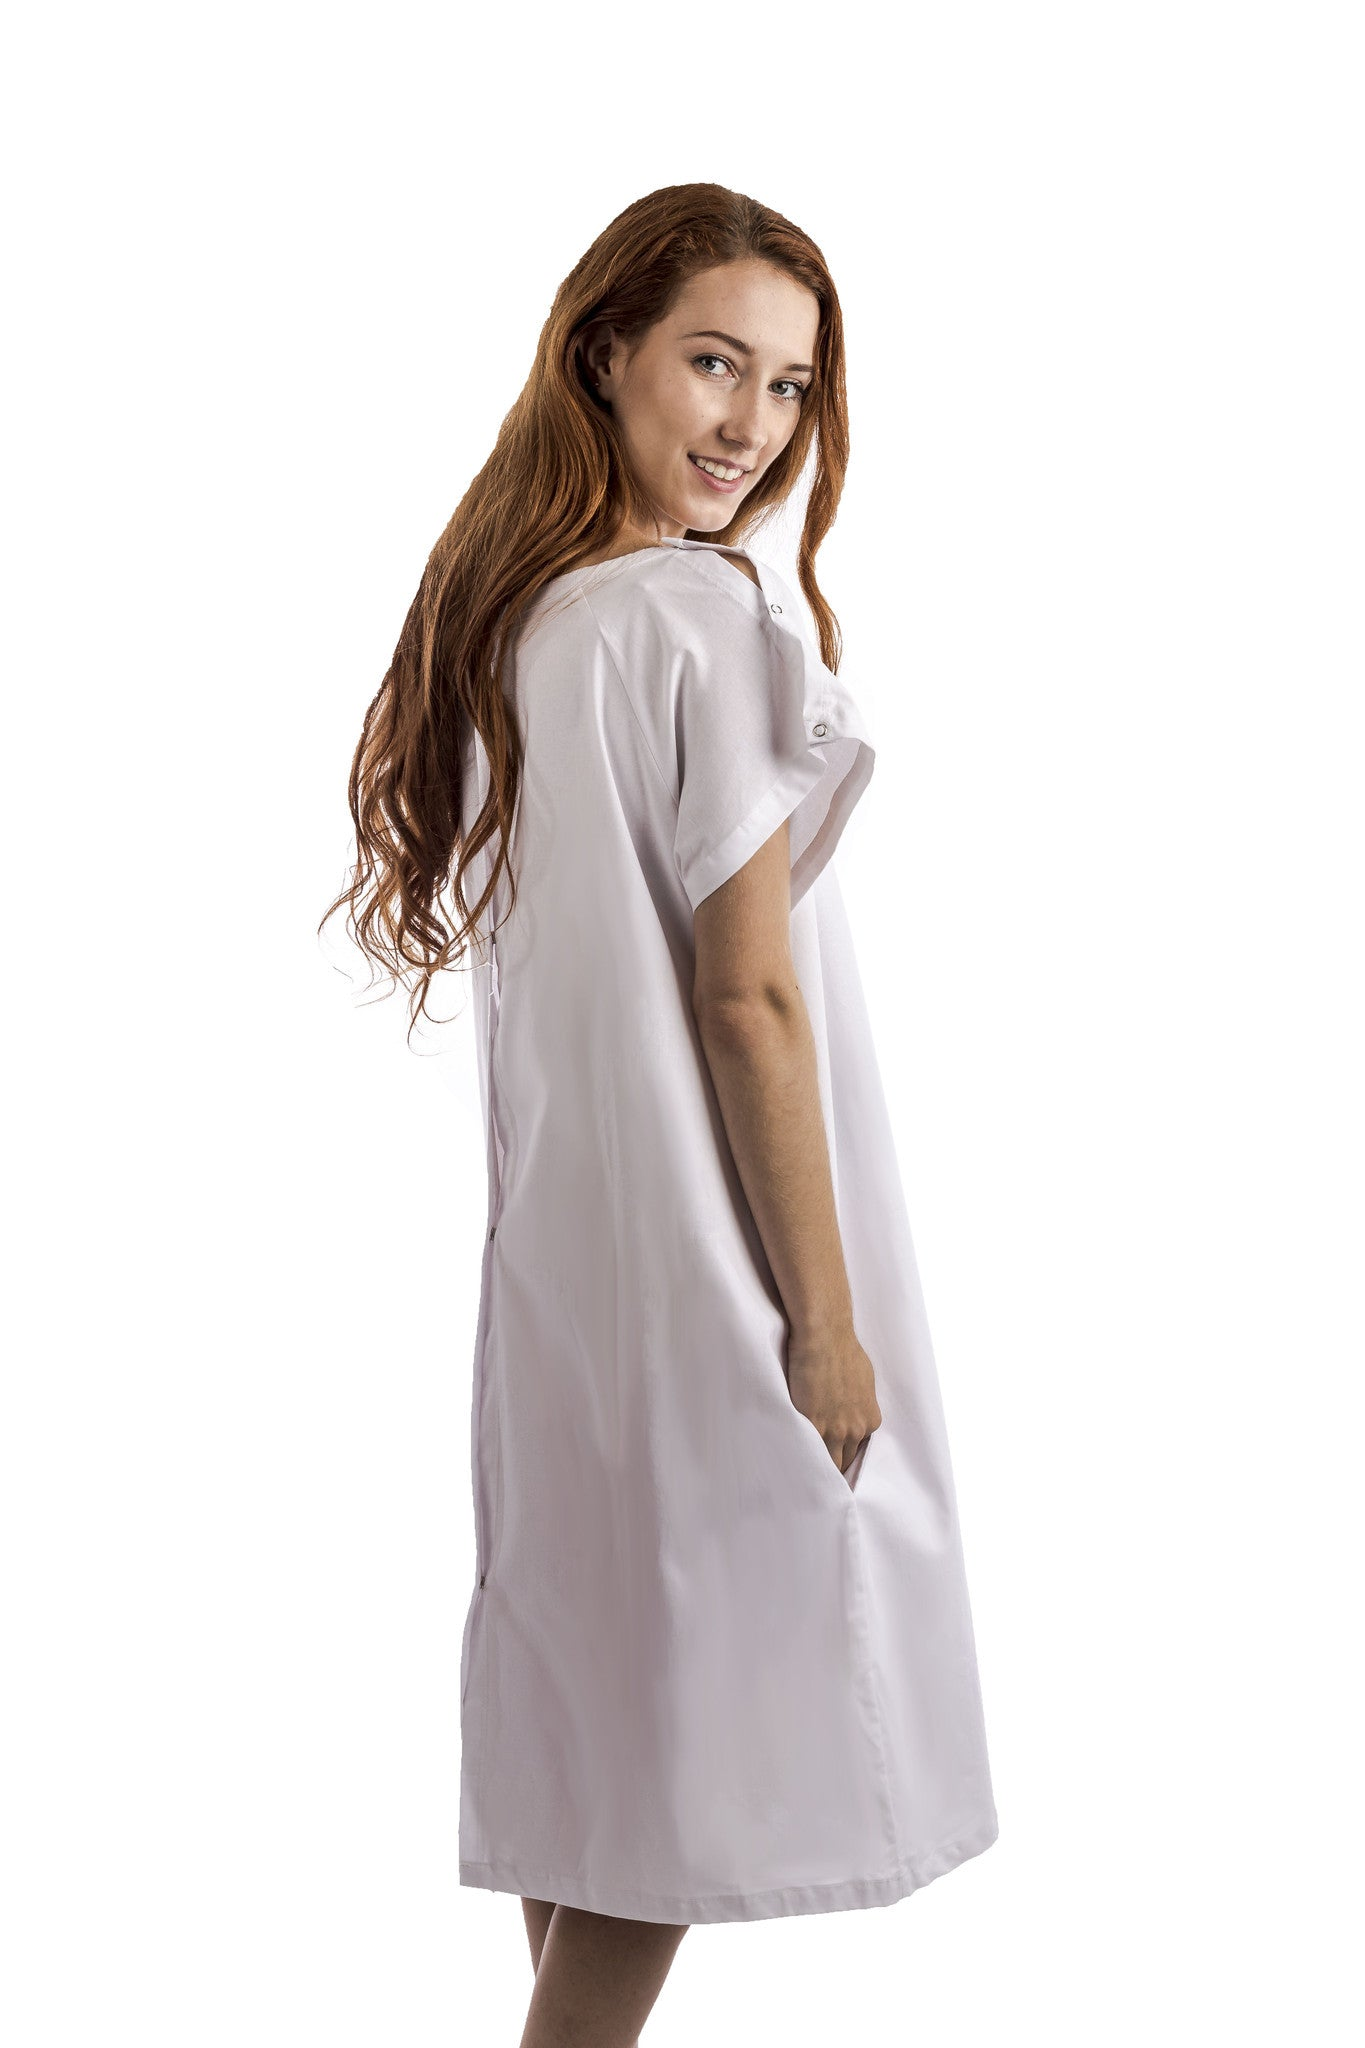 Très Chic - Cute Maternity Hospital Gown – Giftgowns